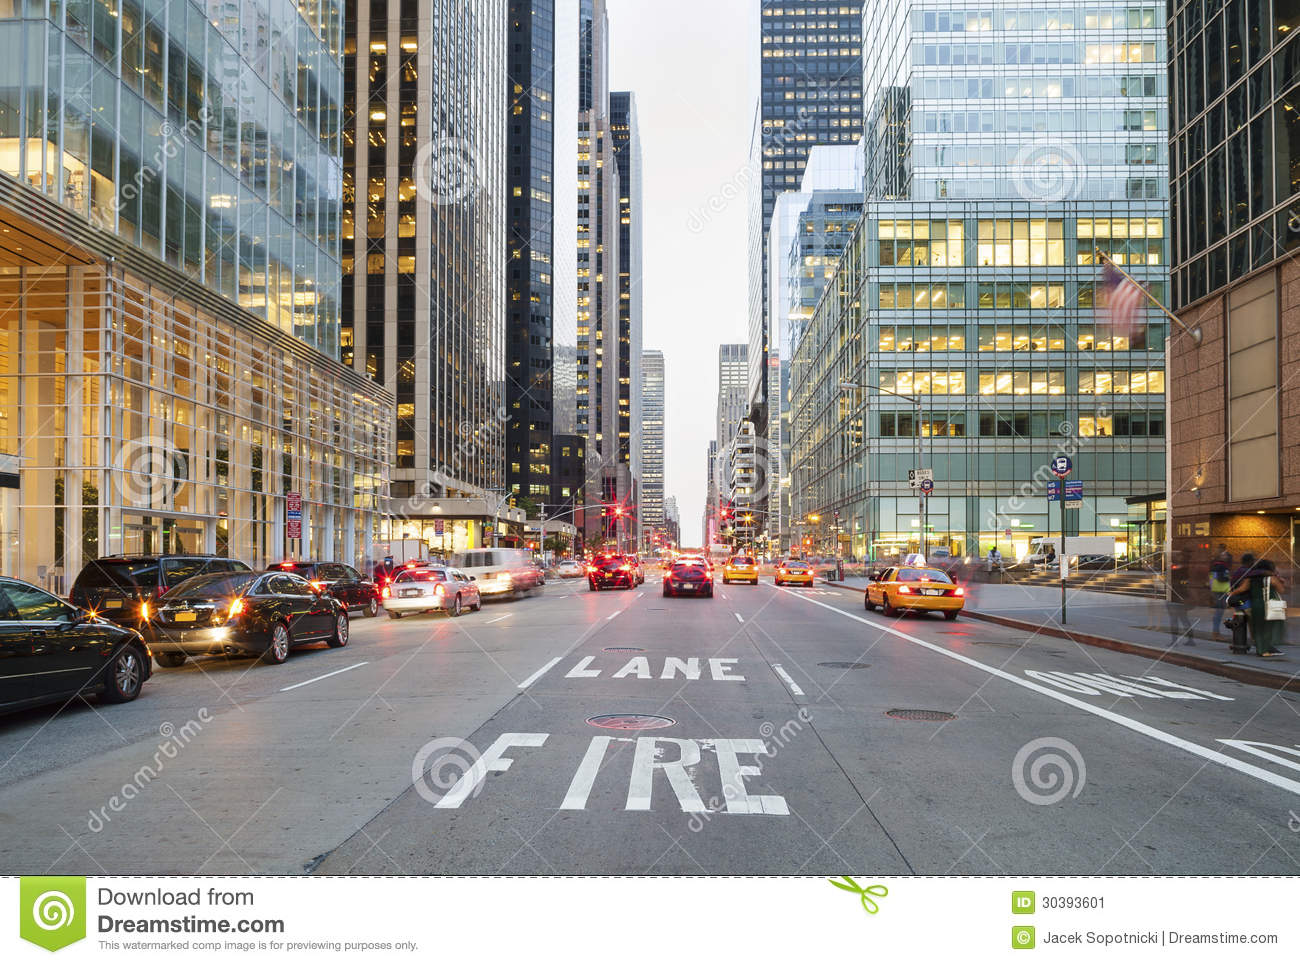 New York City From Street Level Stock Image - Image: 30393601